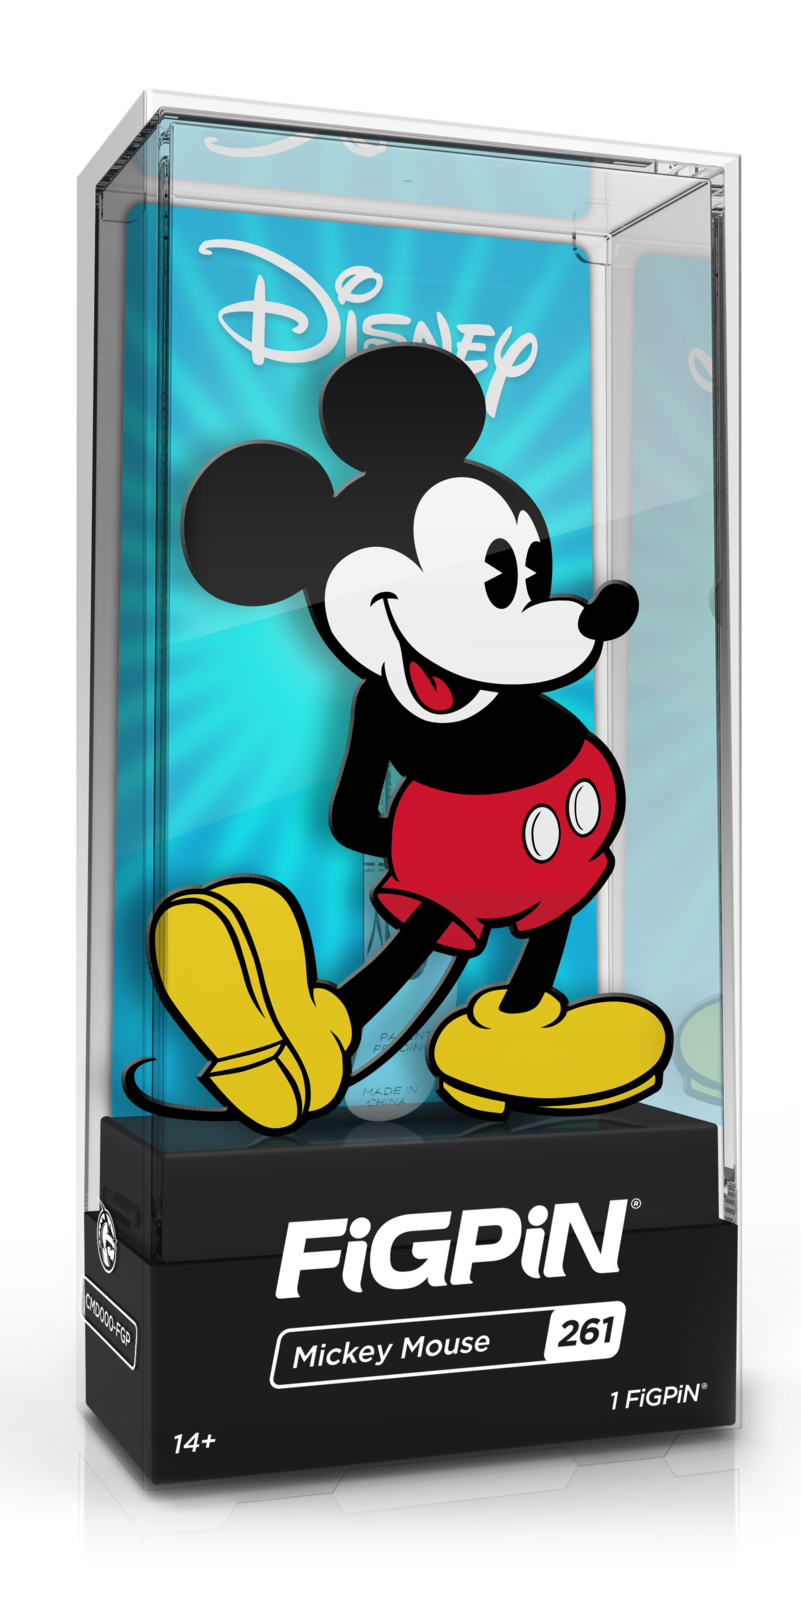 Mickey and Friends: Mickey Mouse (#261) - Collectors FiGPiN image